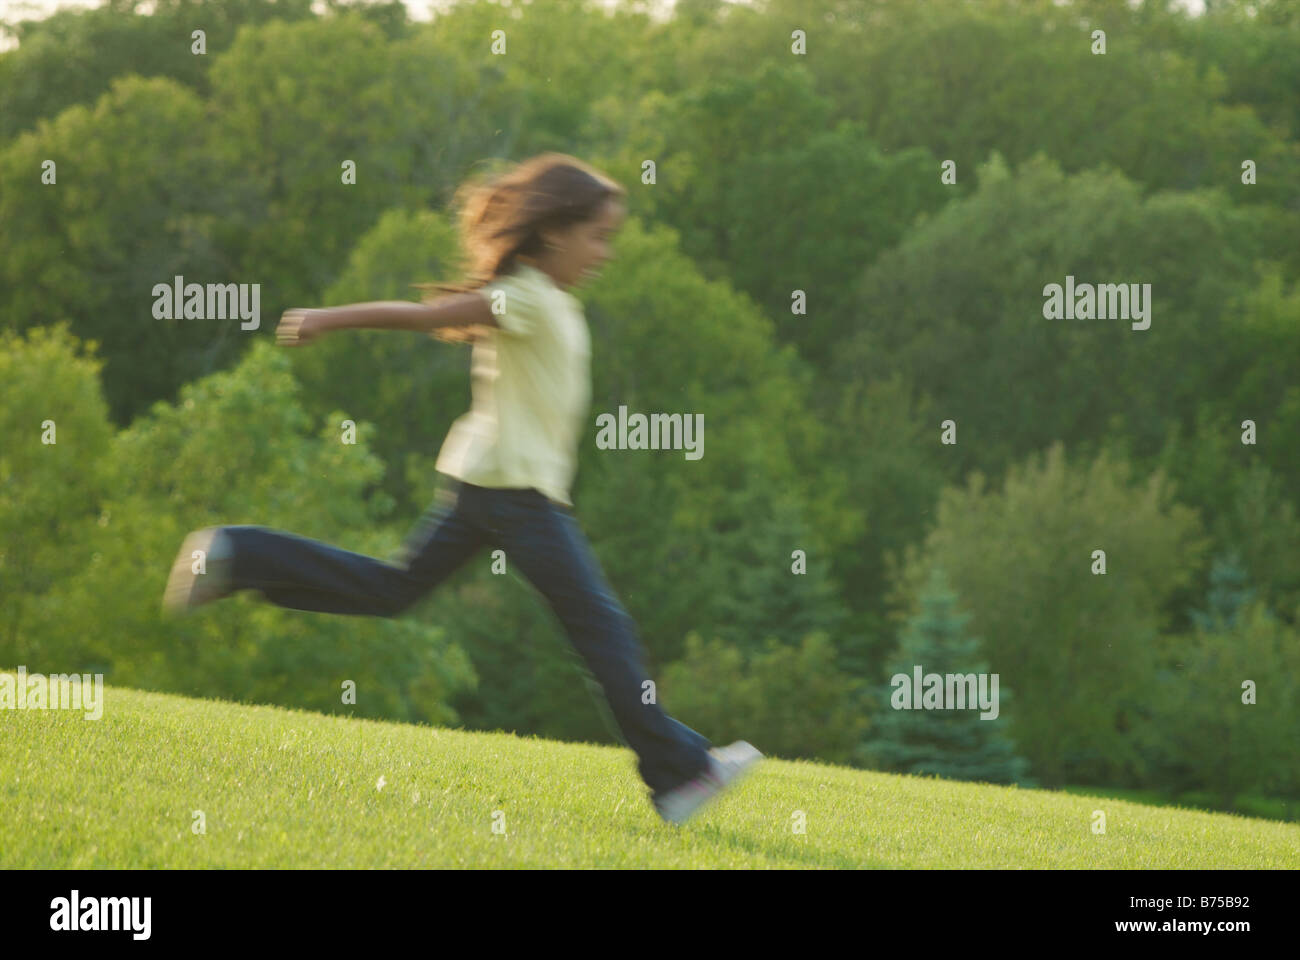 Eight year old girl running, blurred, Winnipeg, Canada Stock Photo